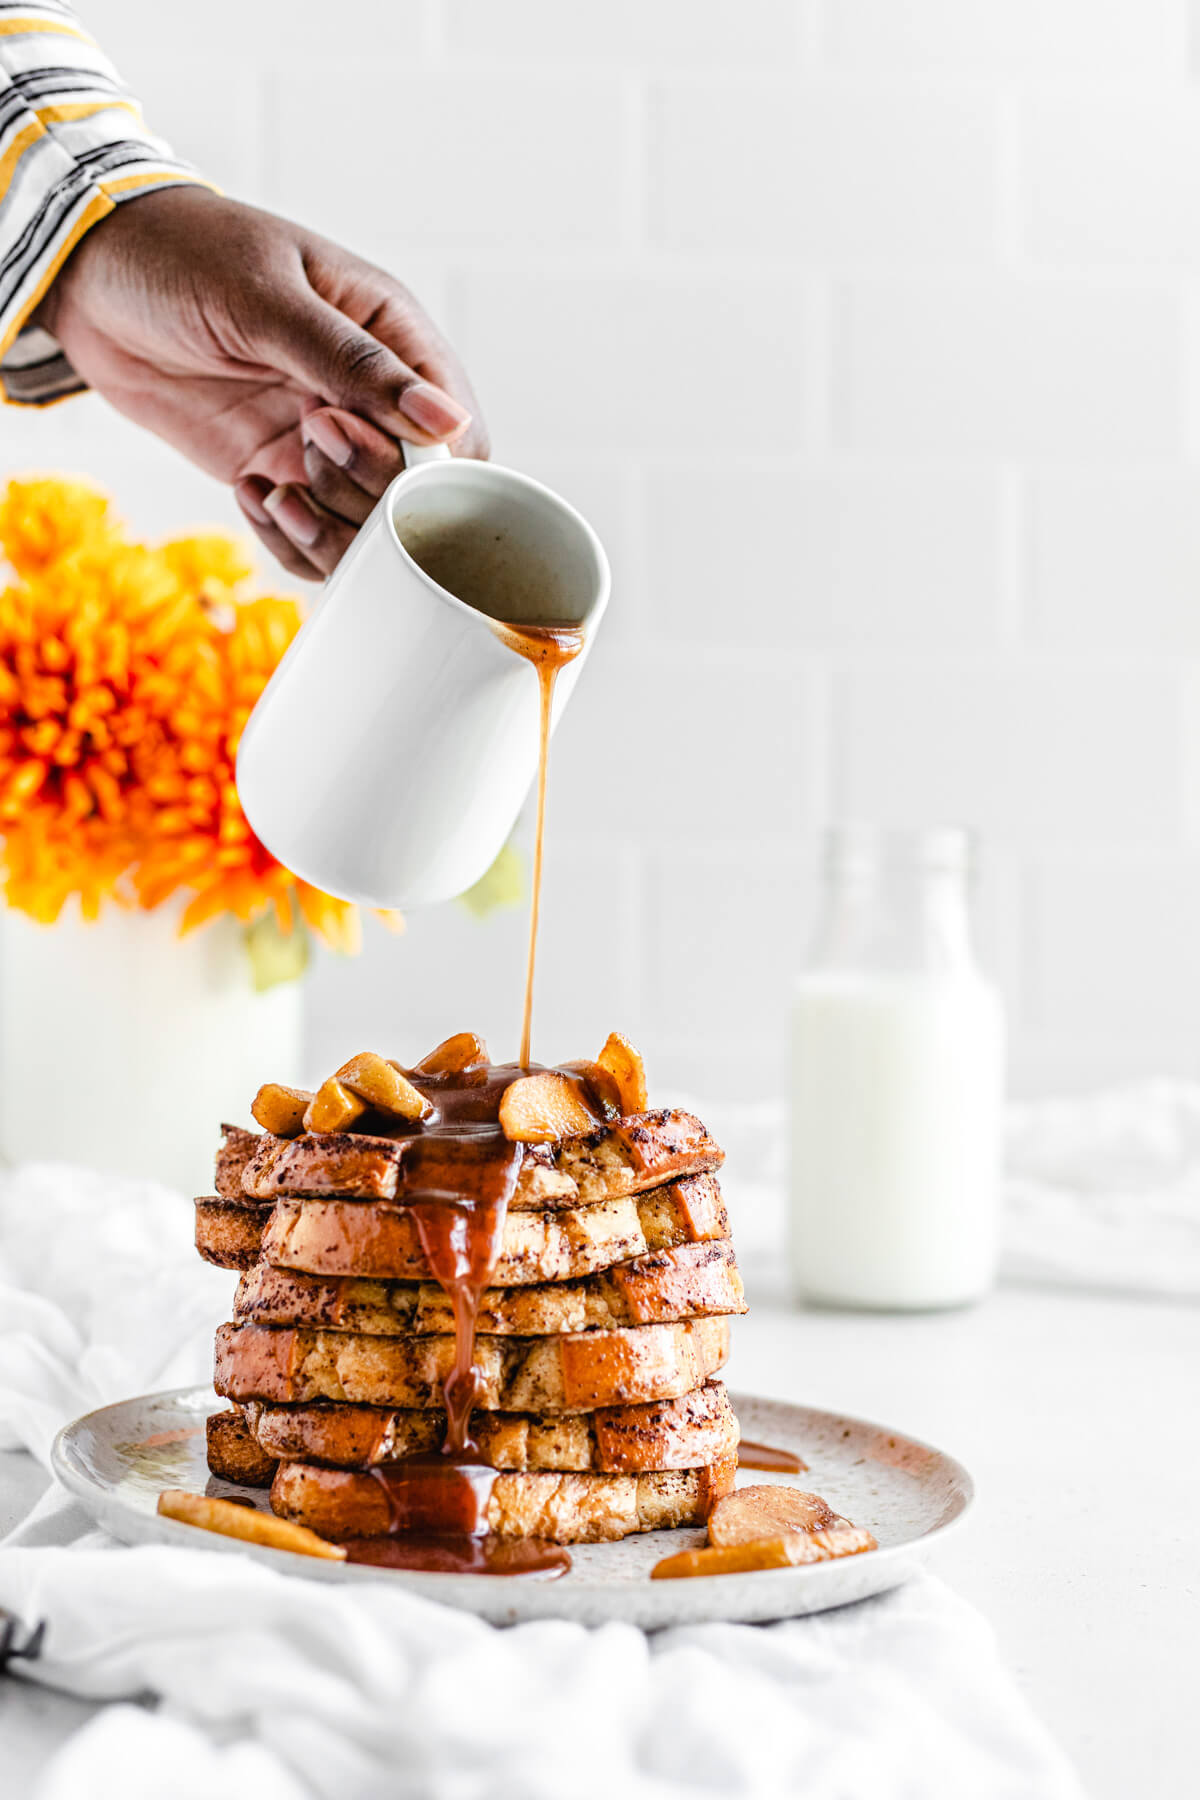 pouring syrup onto a stack of French toast topped with apples